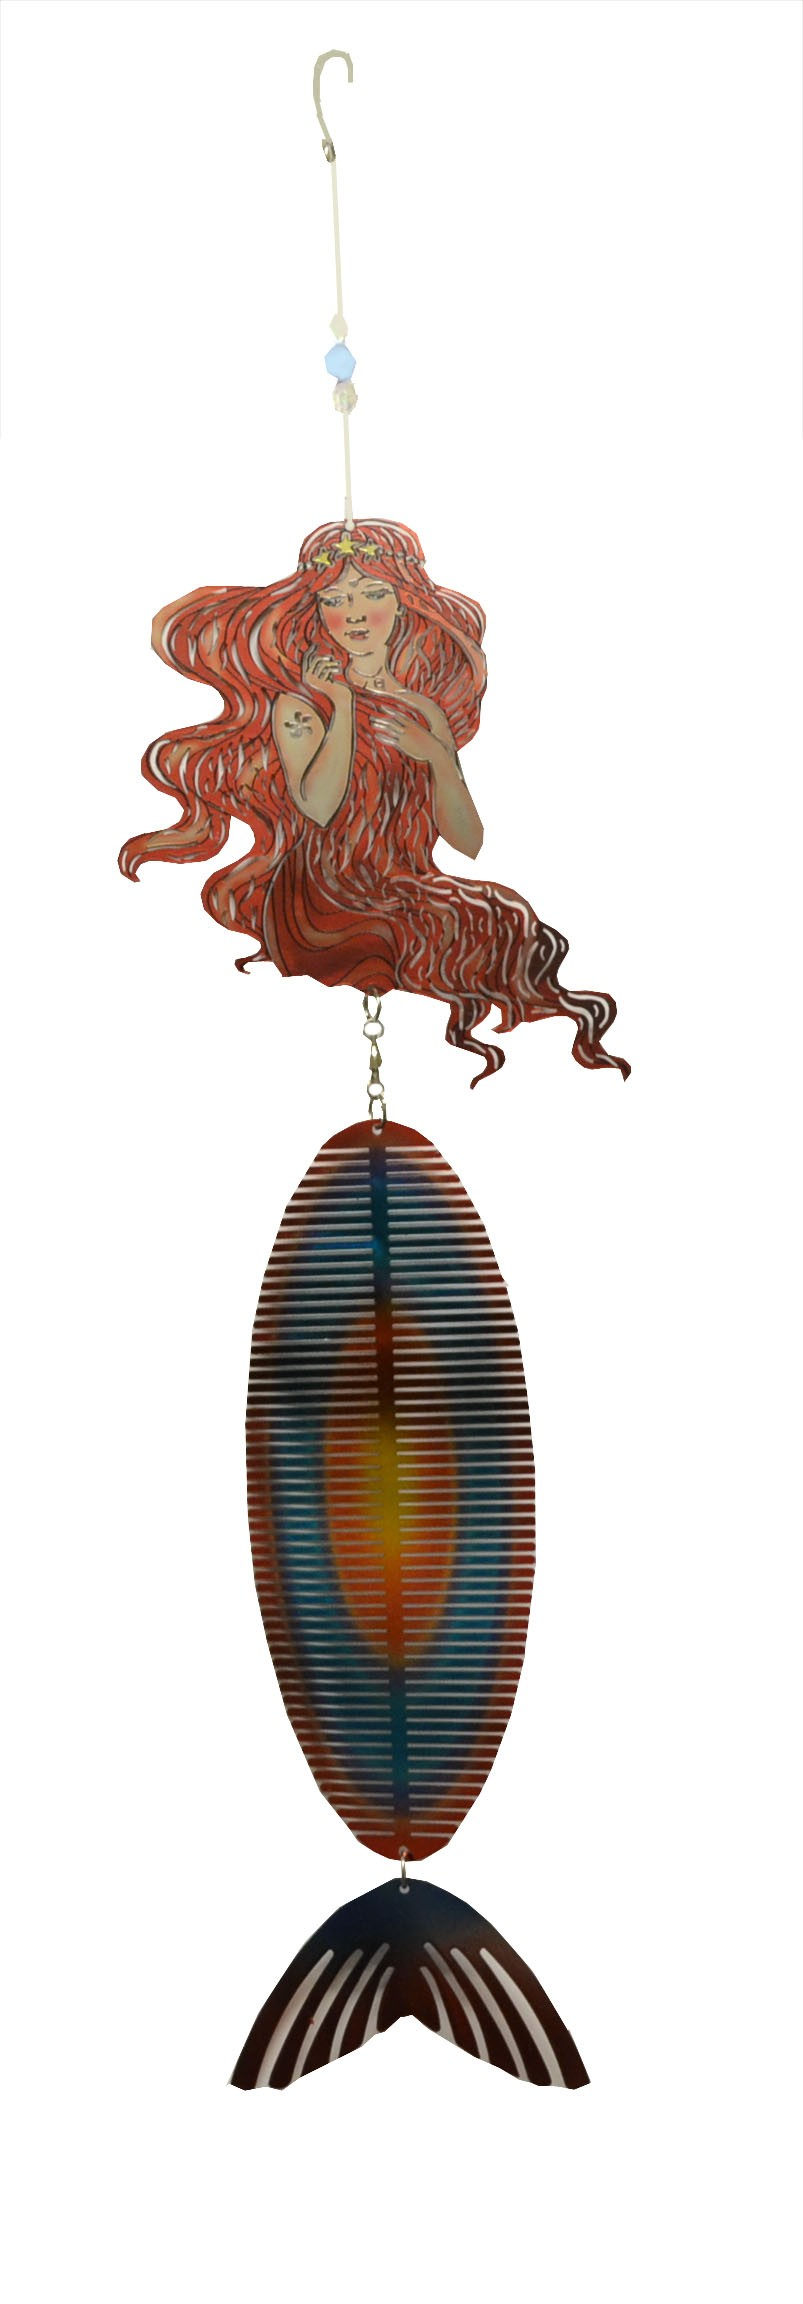 long hair mermaid with colors wind chime 711003